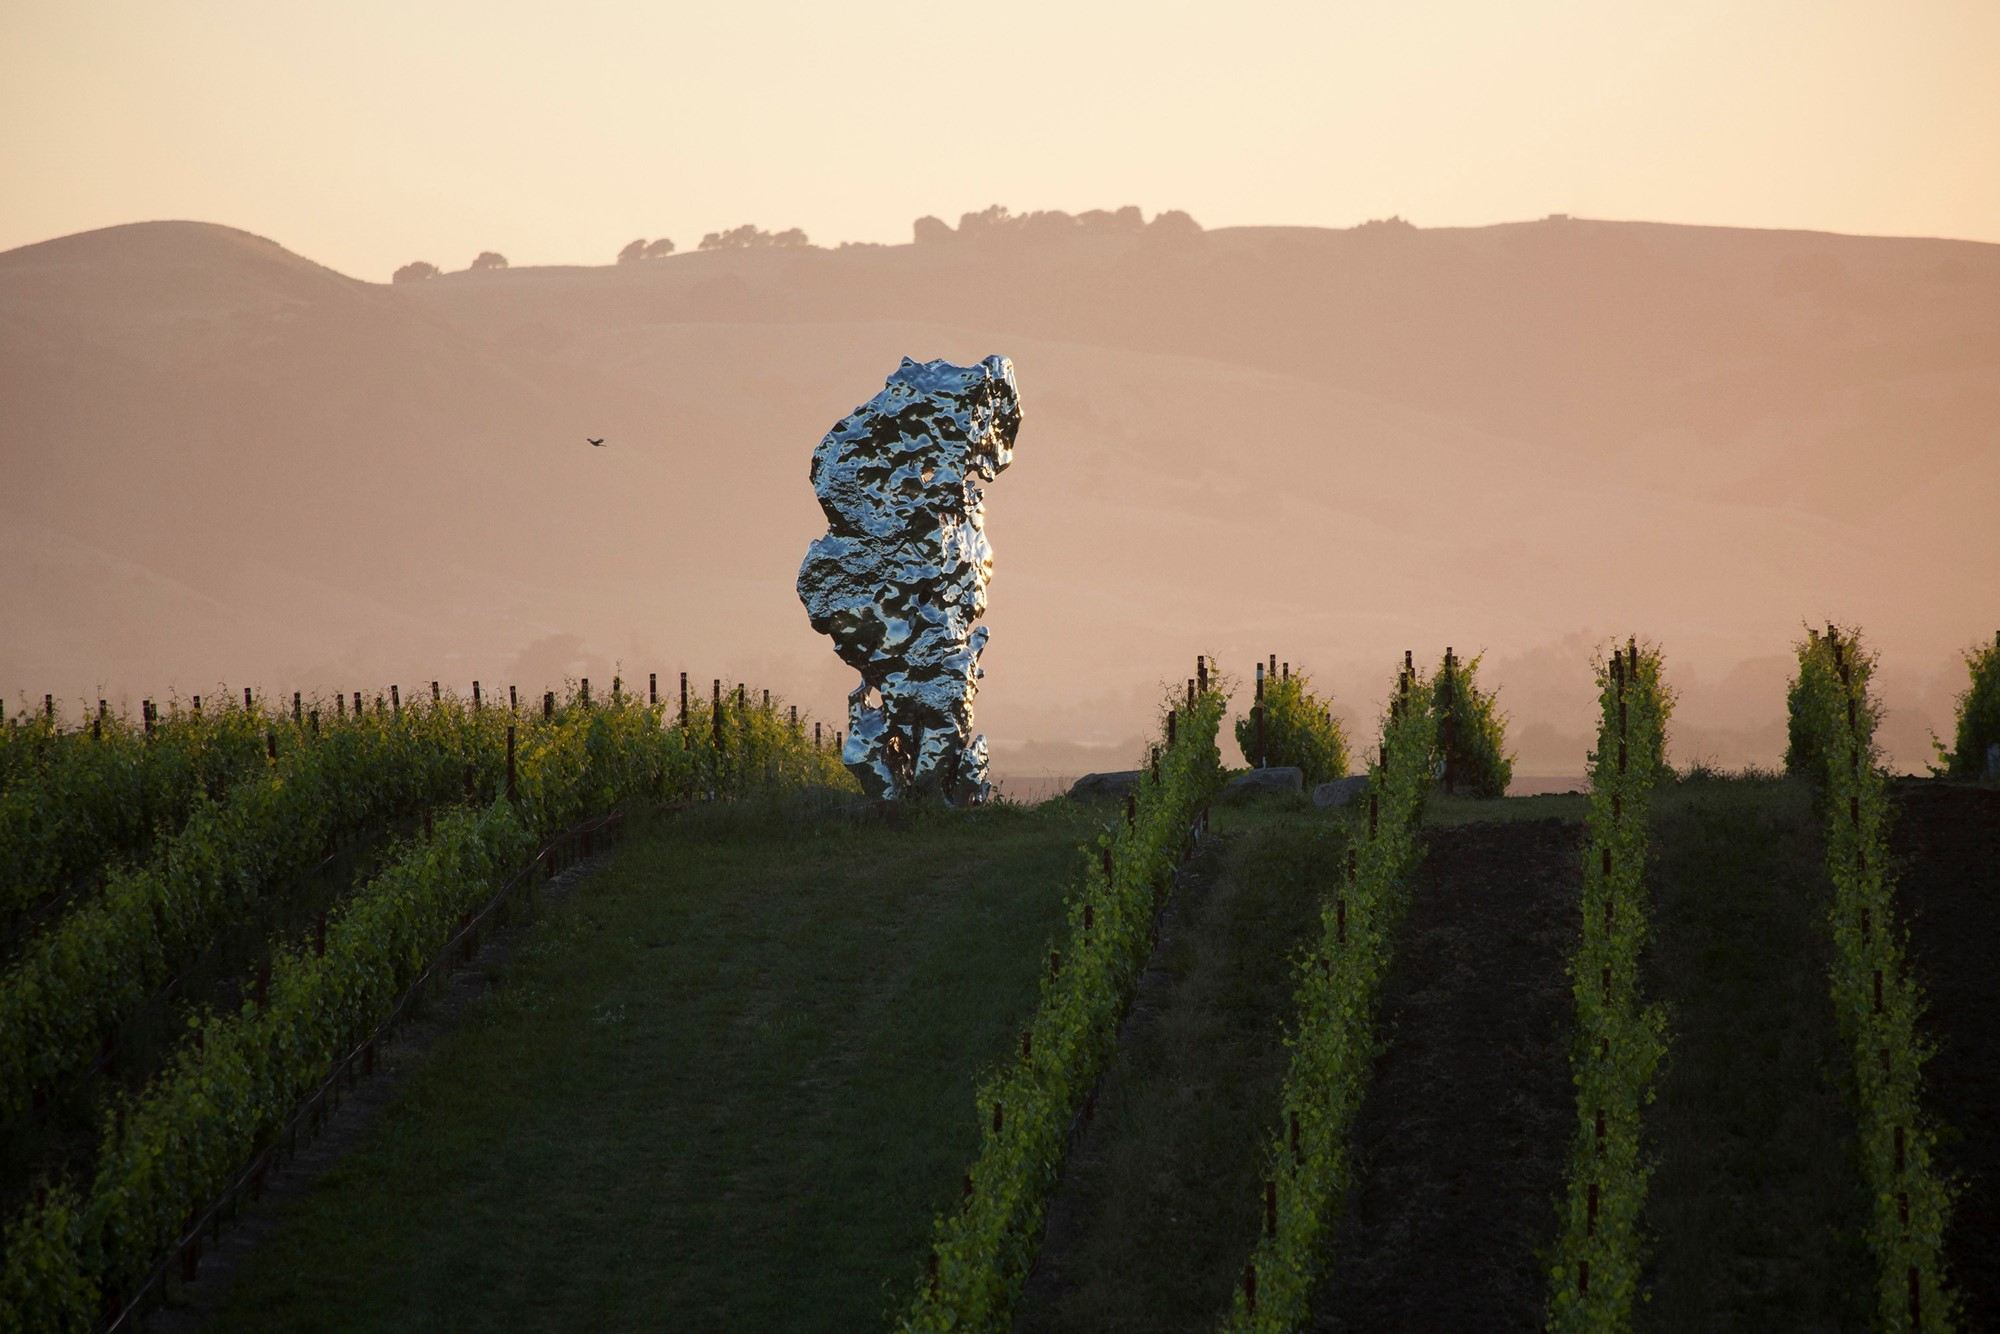 Ai Weiwei and Yayoi Kusama's Sculptures Sit Amidst The Vines In A Californian Winery